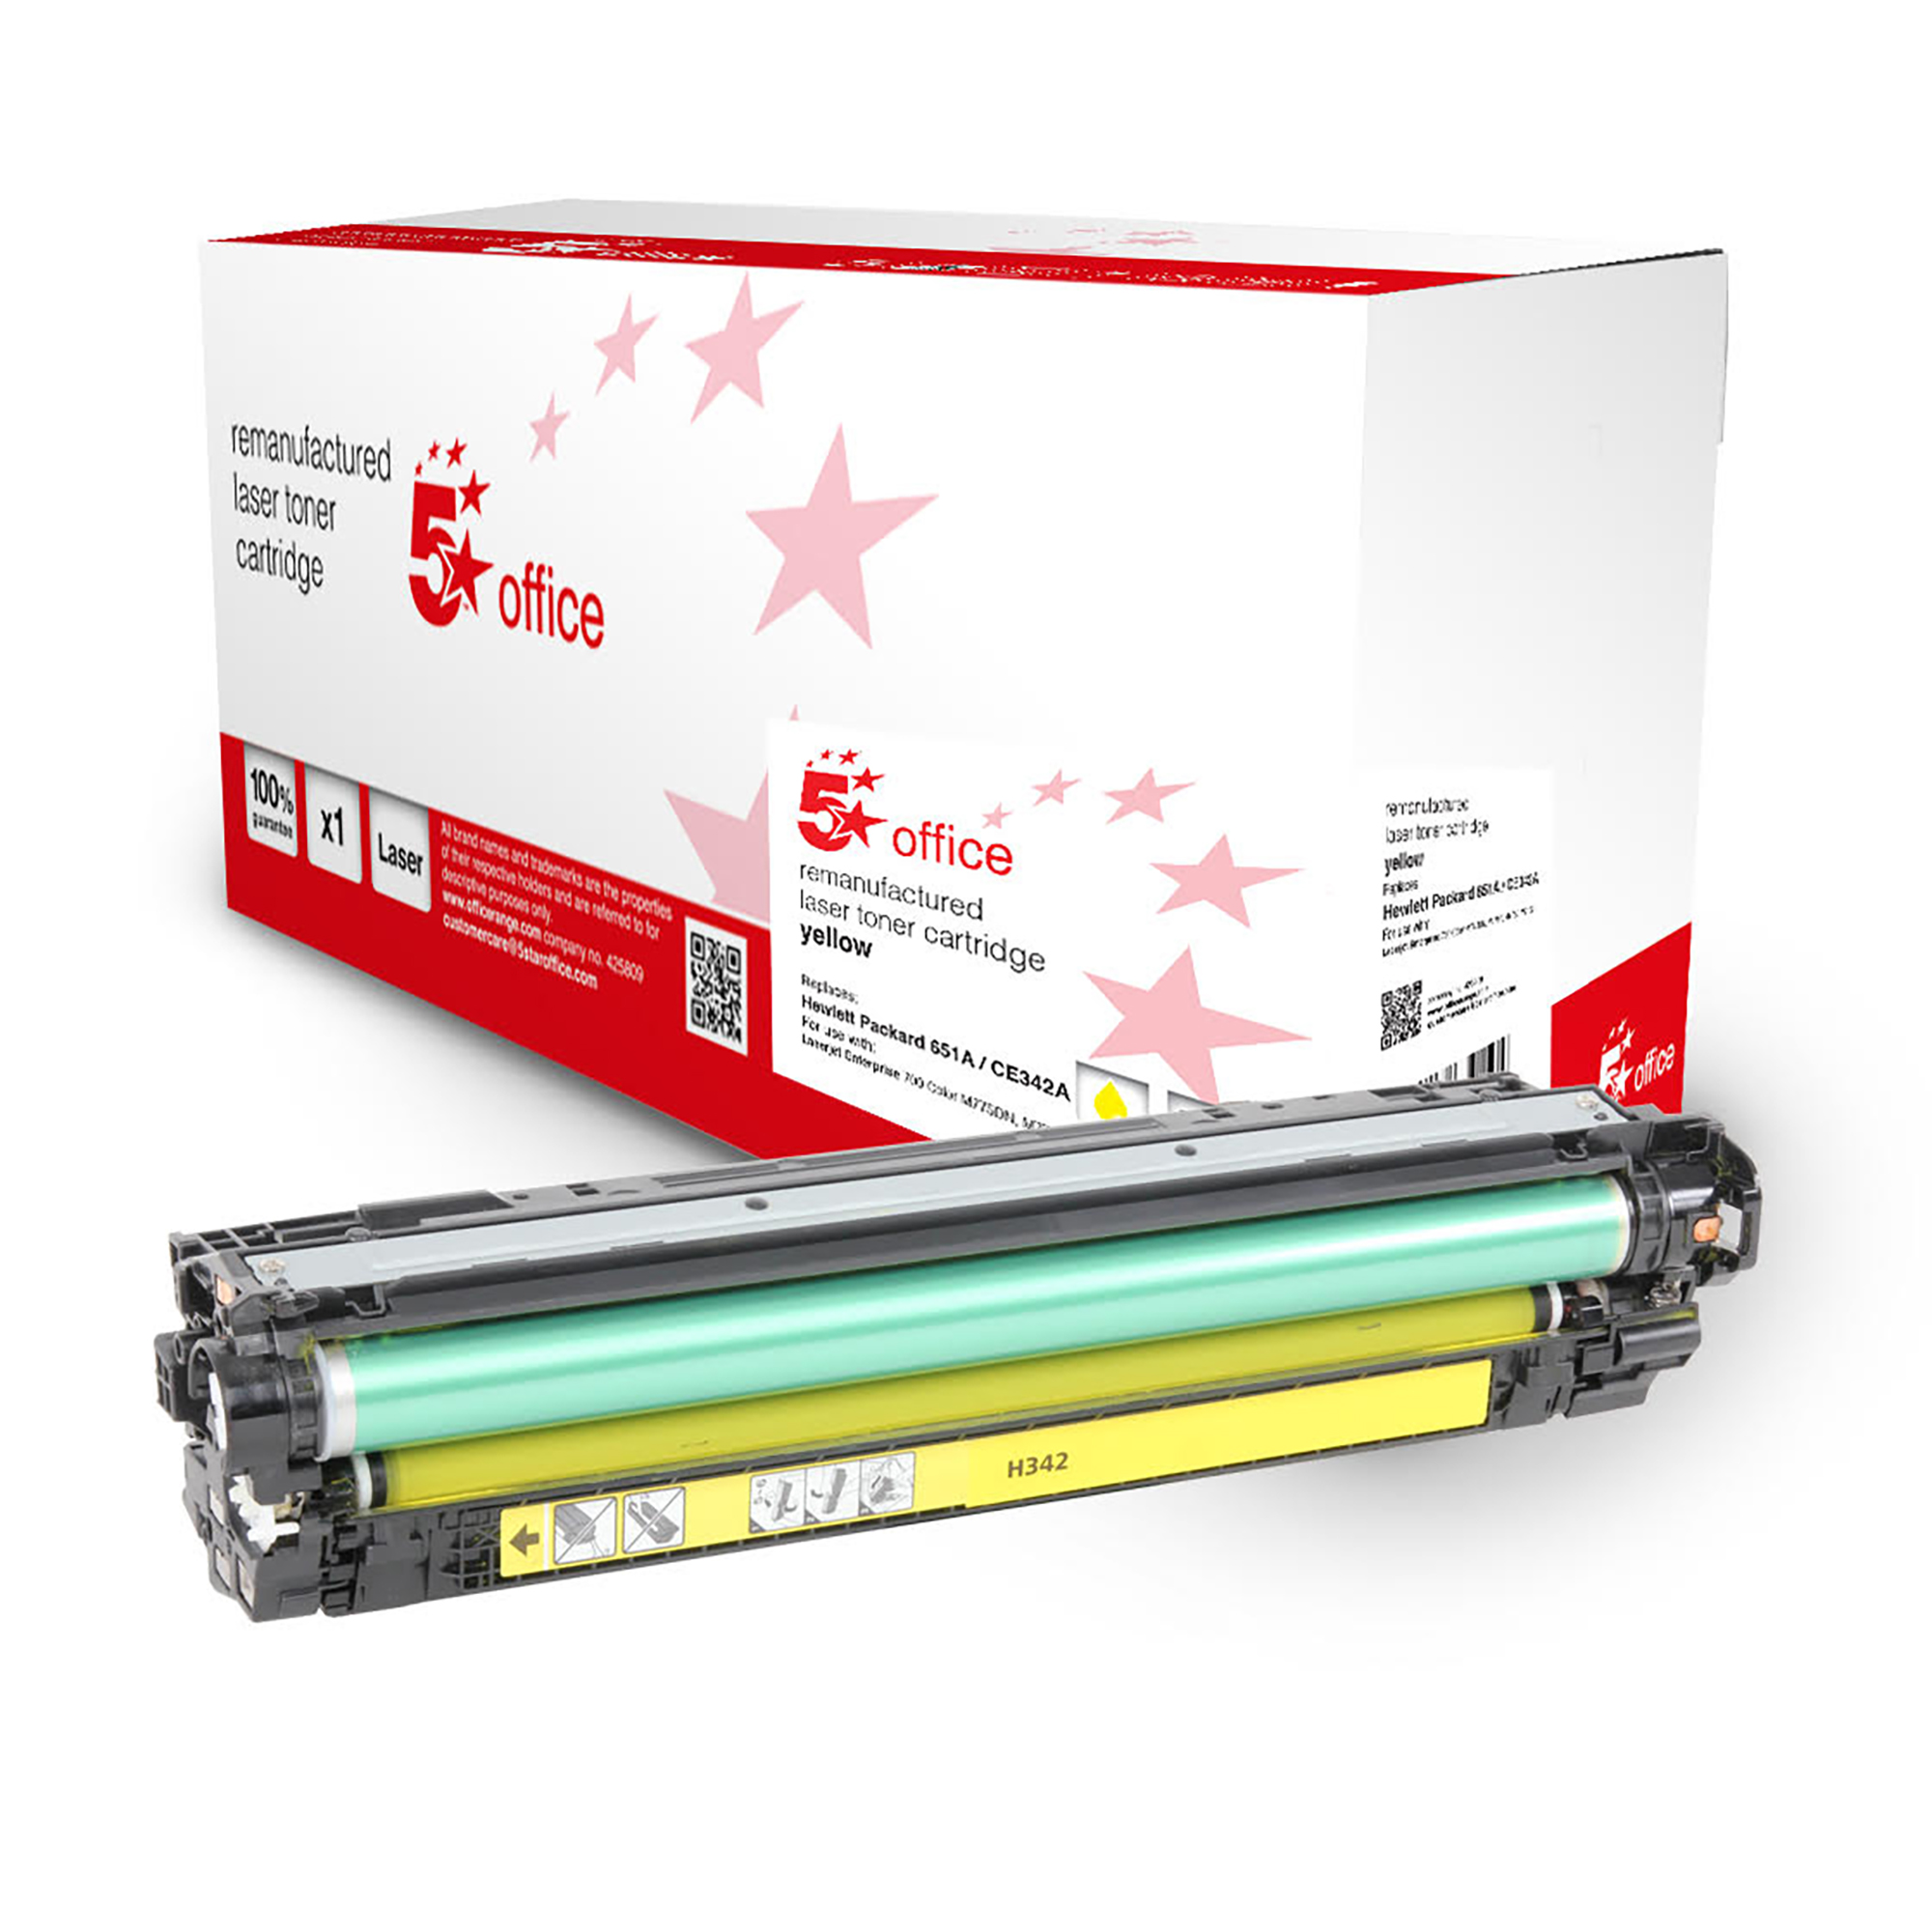 5 Star Office Remanufactured Toner Cartridge Page Life 16000pp Yellow HP 651A Alternative CE342A